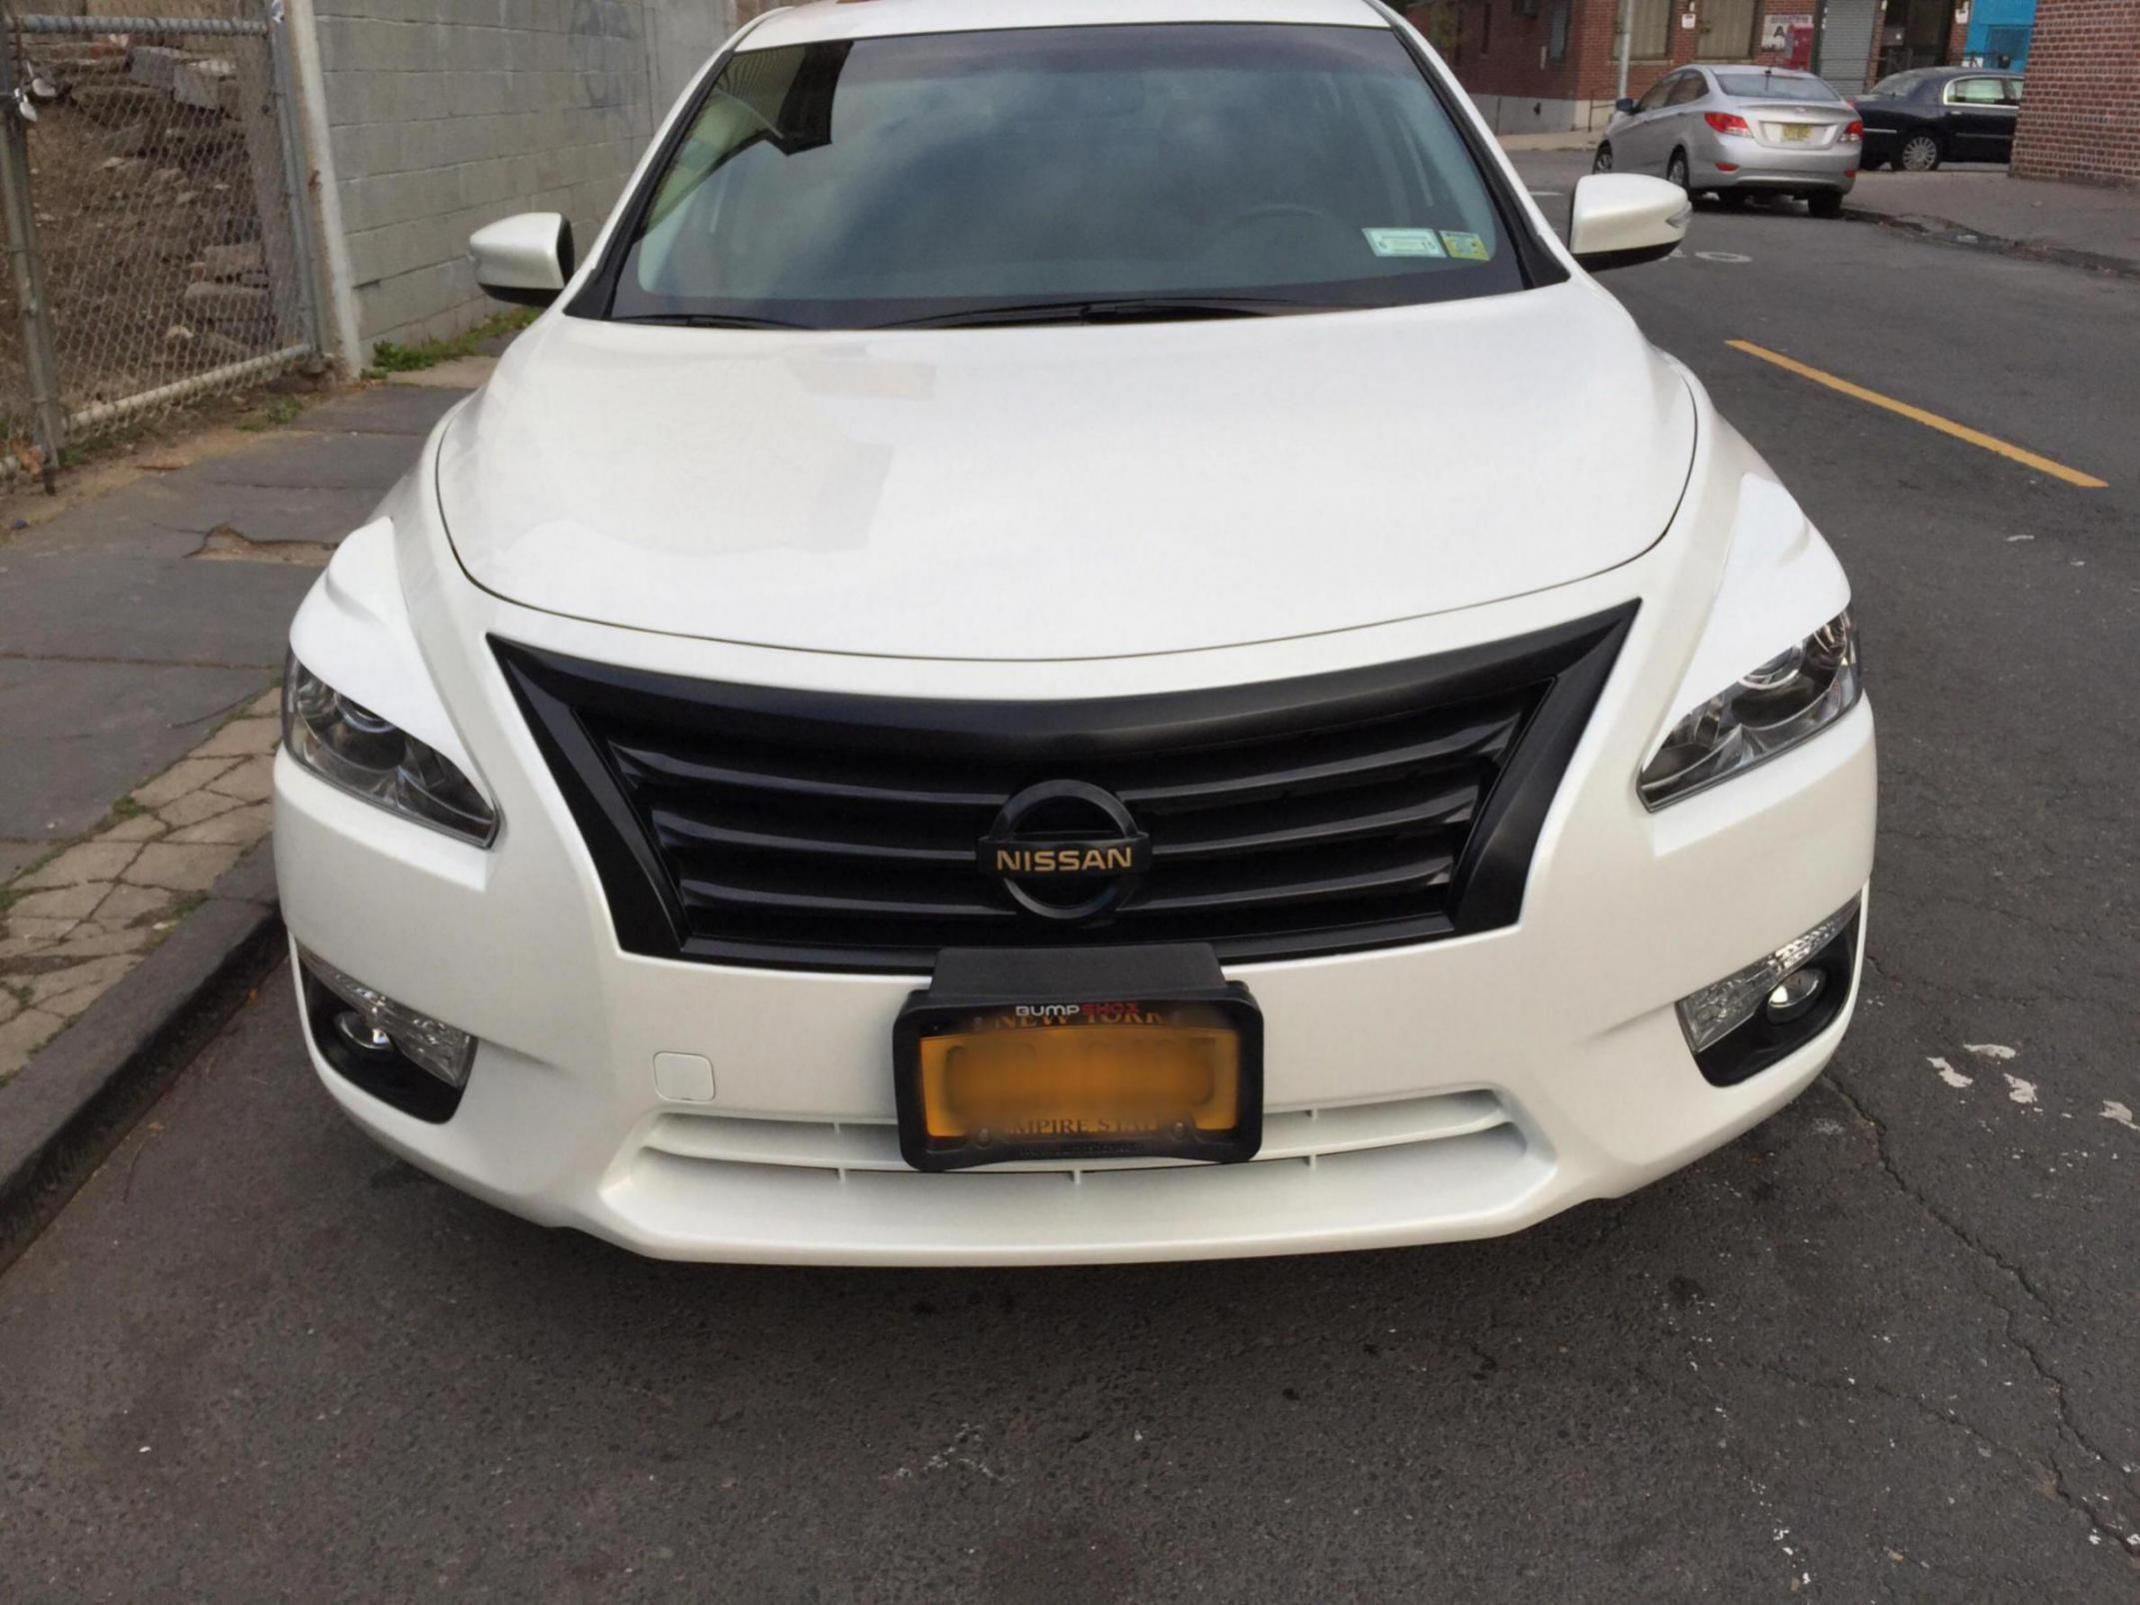 photo mesh cars ice nissan black grille gallery used fine e g altima sl hd and